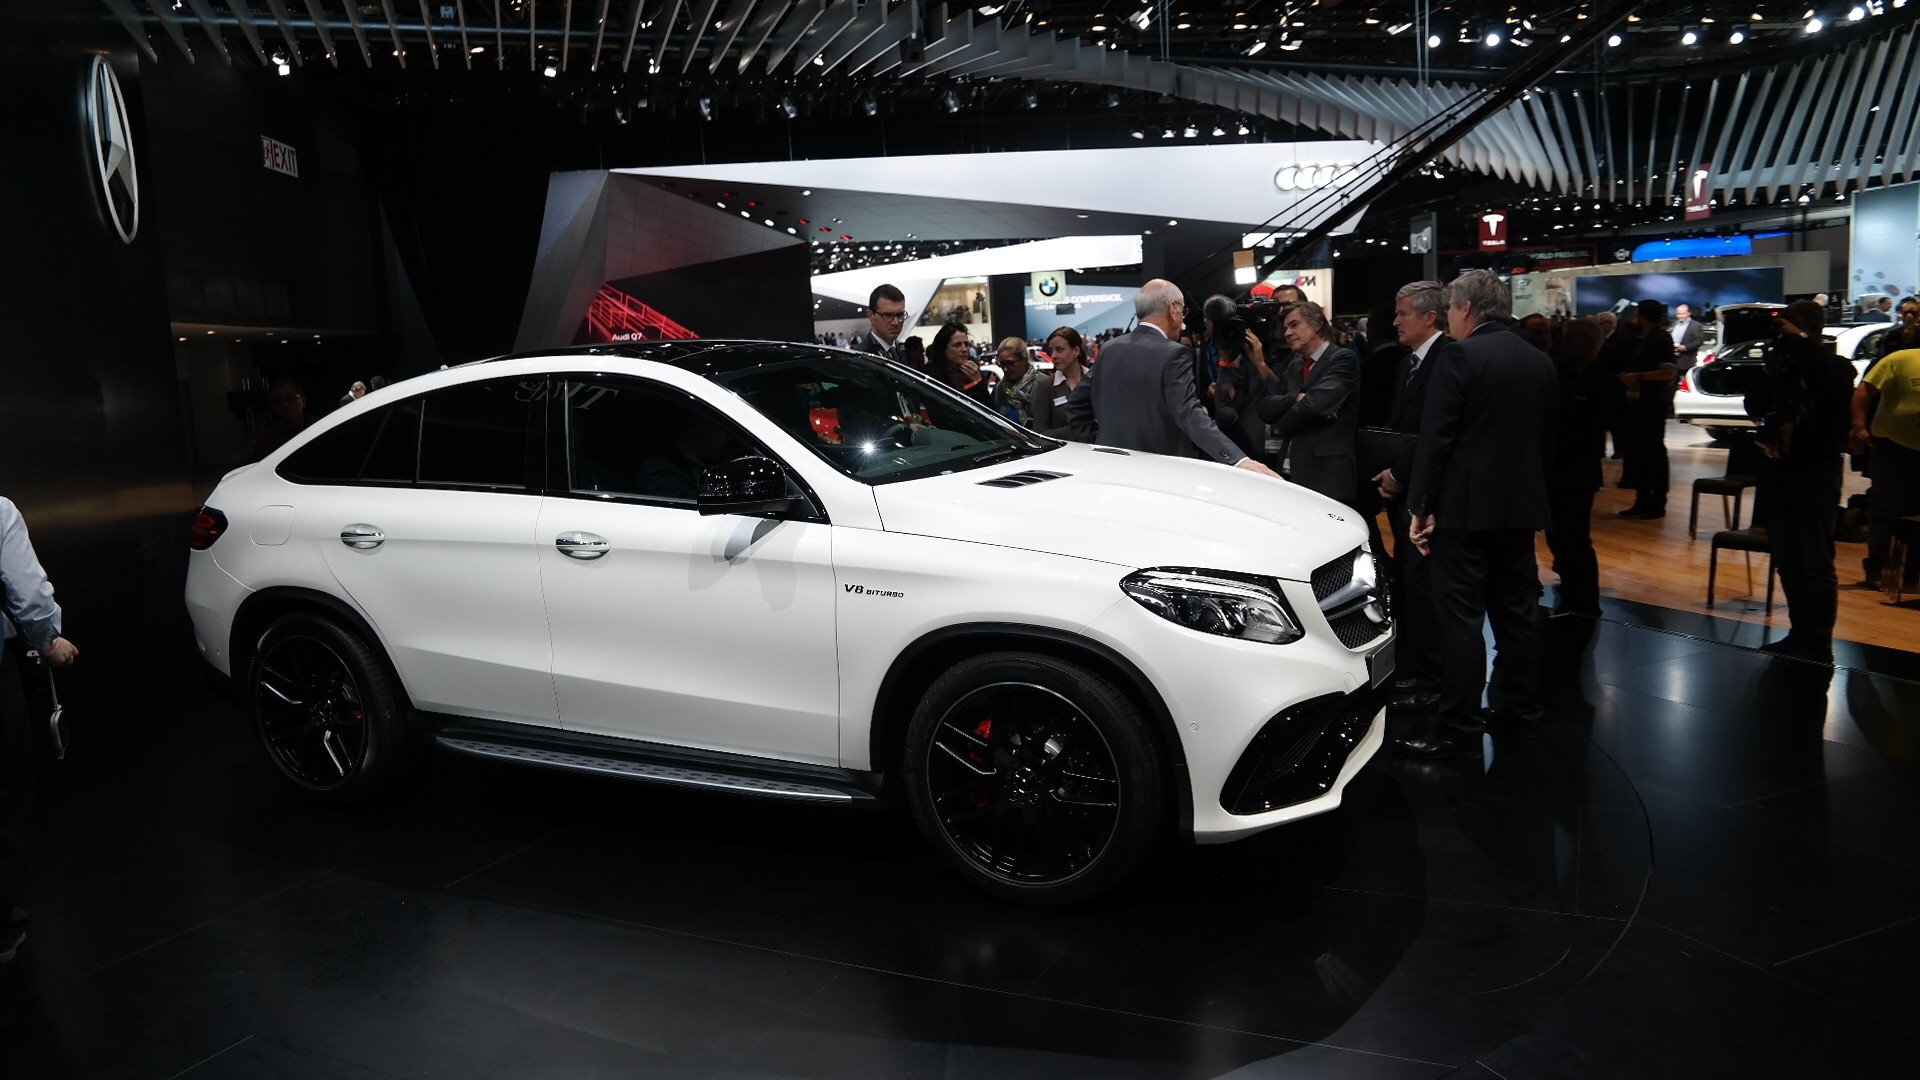 https://s1.cdn.autoevolution.com/images/news/gallery/mercedes-amg-gle63-s-coupe-is-too-much-in-the-flesh-at-the-2015-detroit-auto-show-live-photos_5.jpg